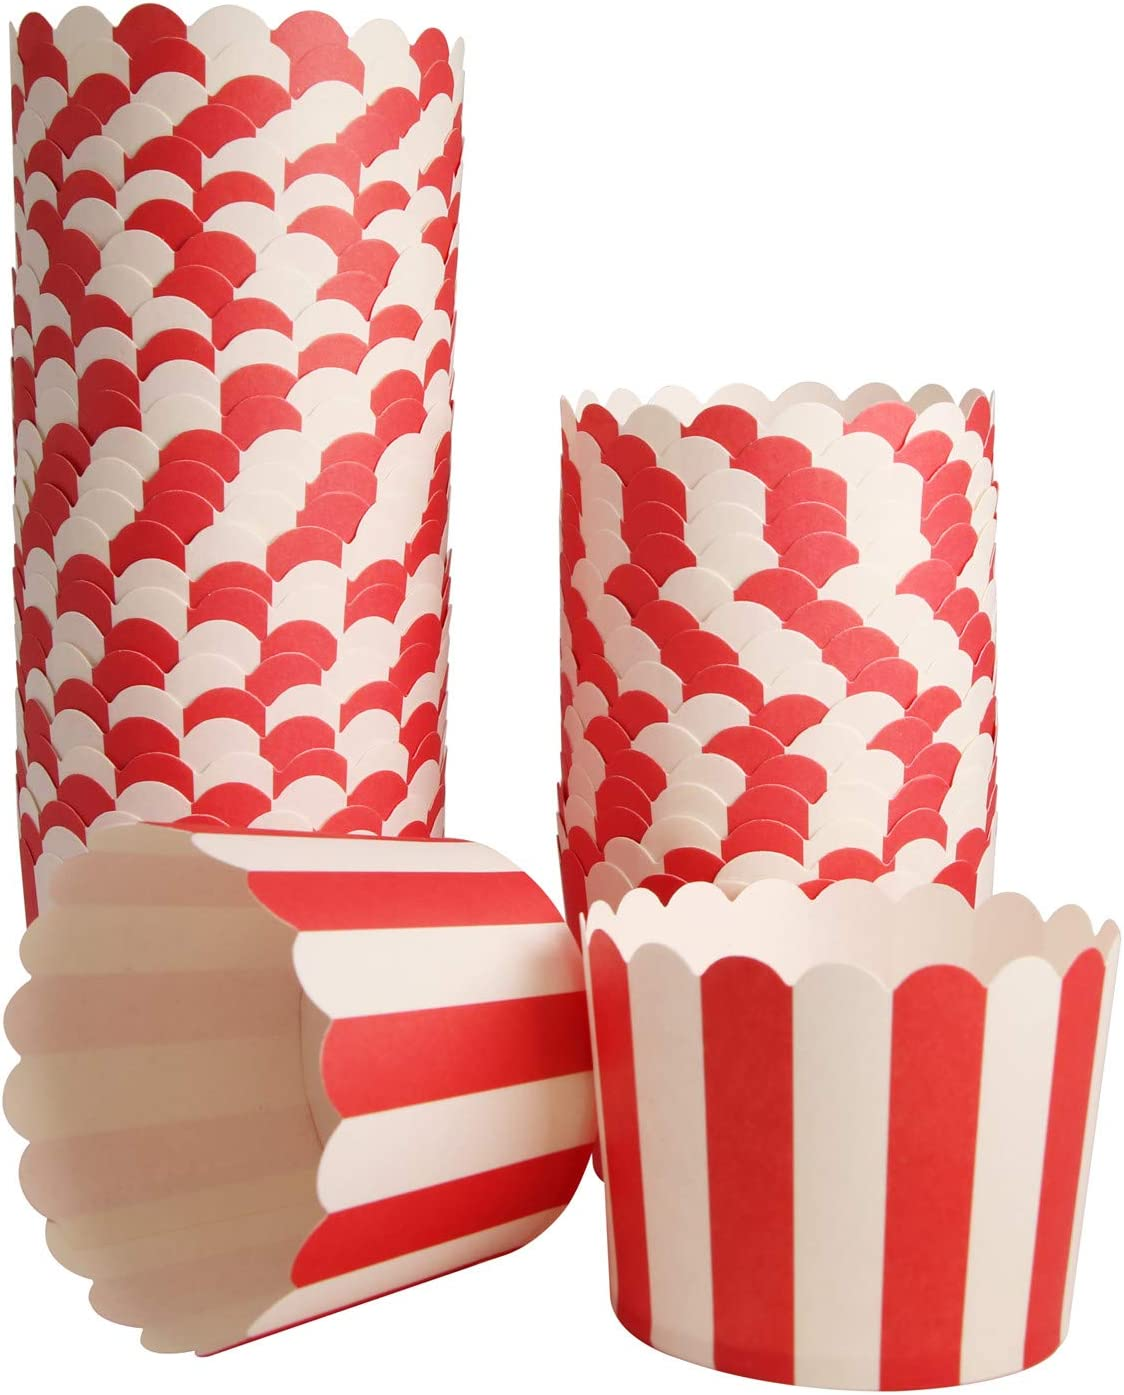 50-Pack Muffin Fashionable Cups Baking Paper Cupcake Muffins Red Liners Cup 5 popular